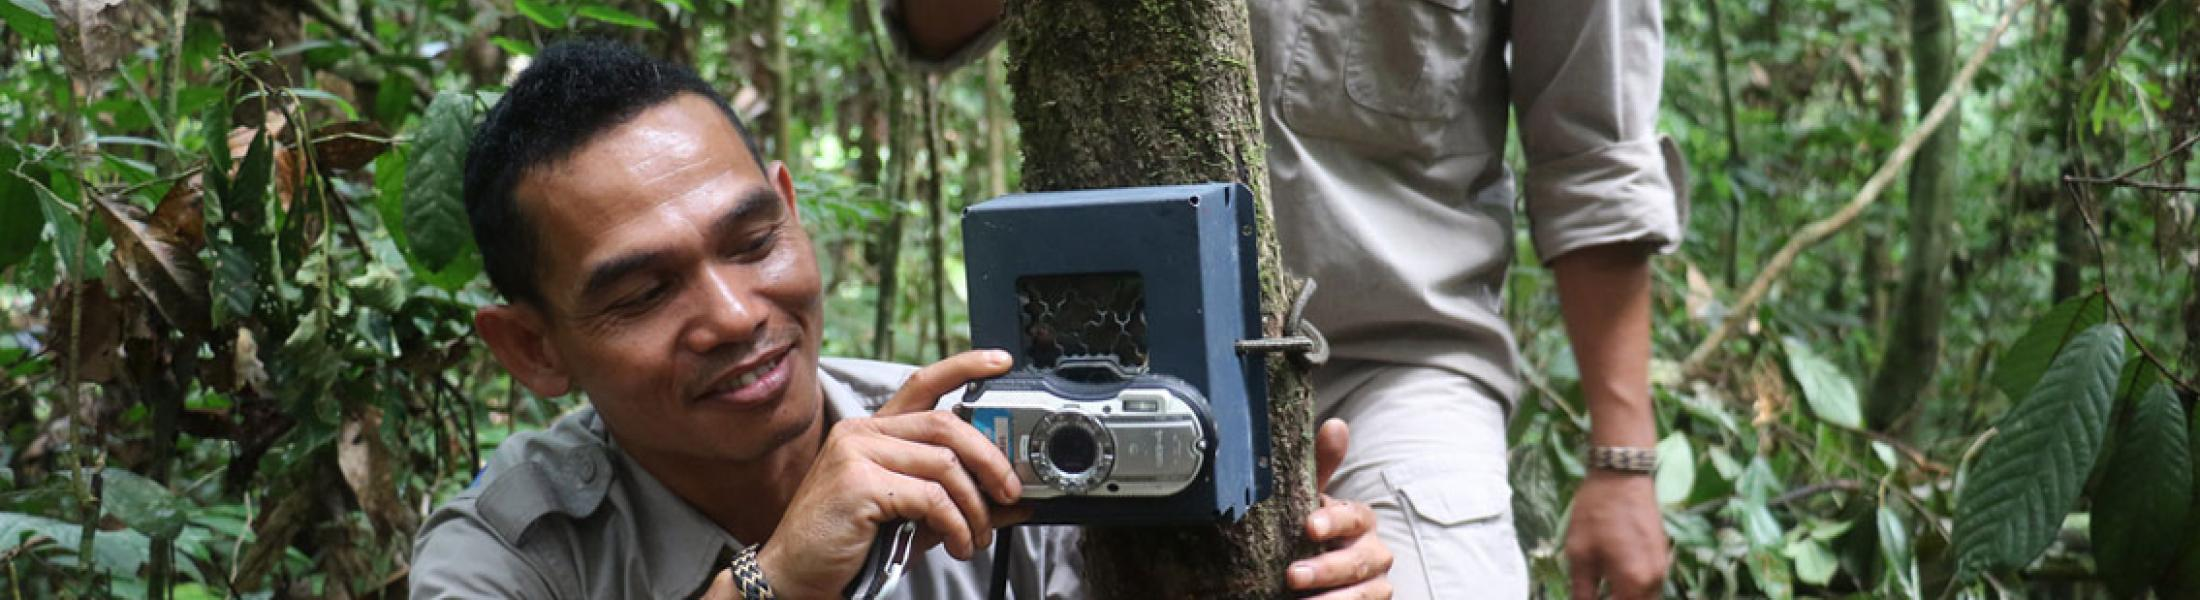 A man adjusts a wildlife camera in a dense jungle.